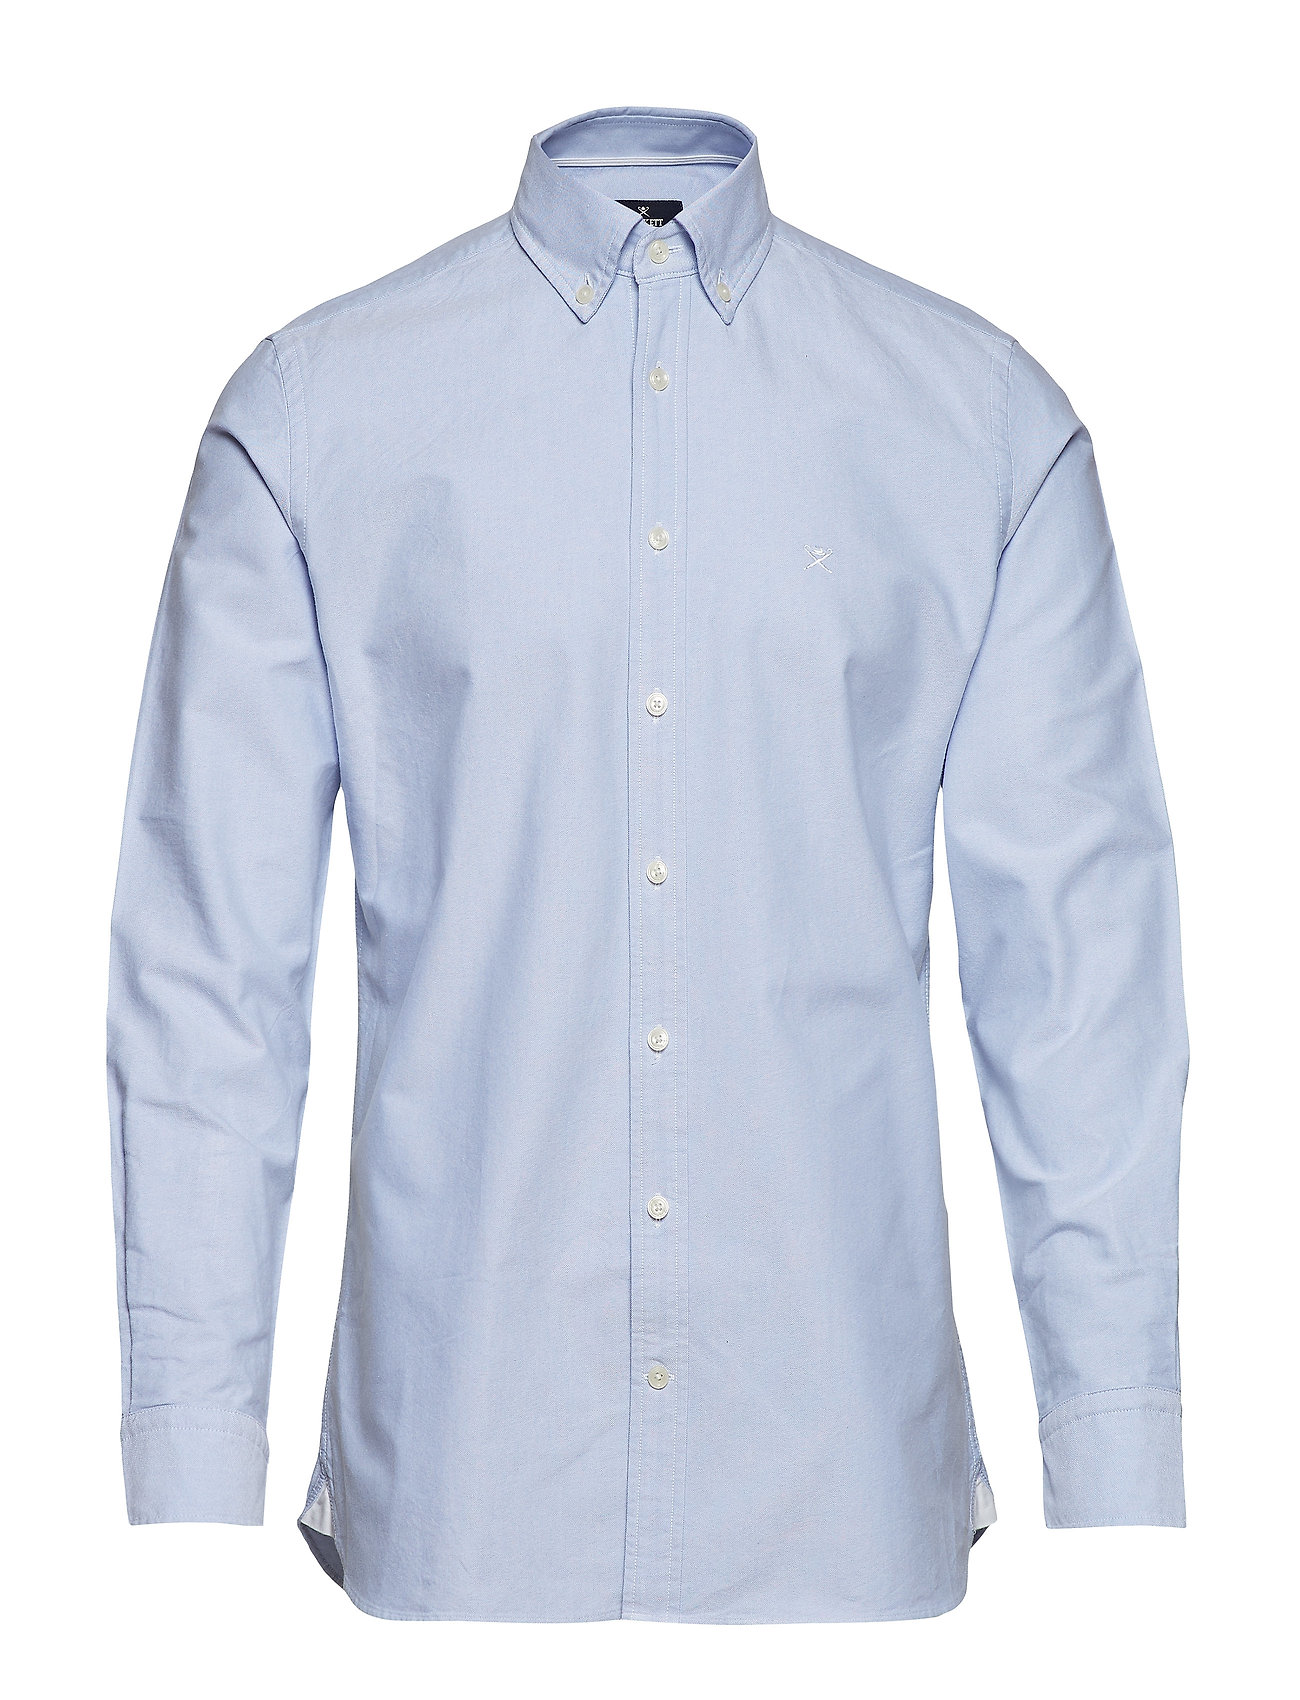 Hackett SLIM WASHED OXFORD - SKY